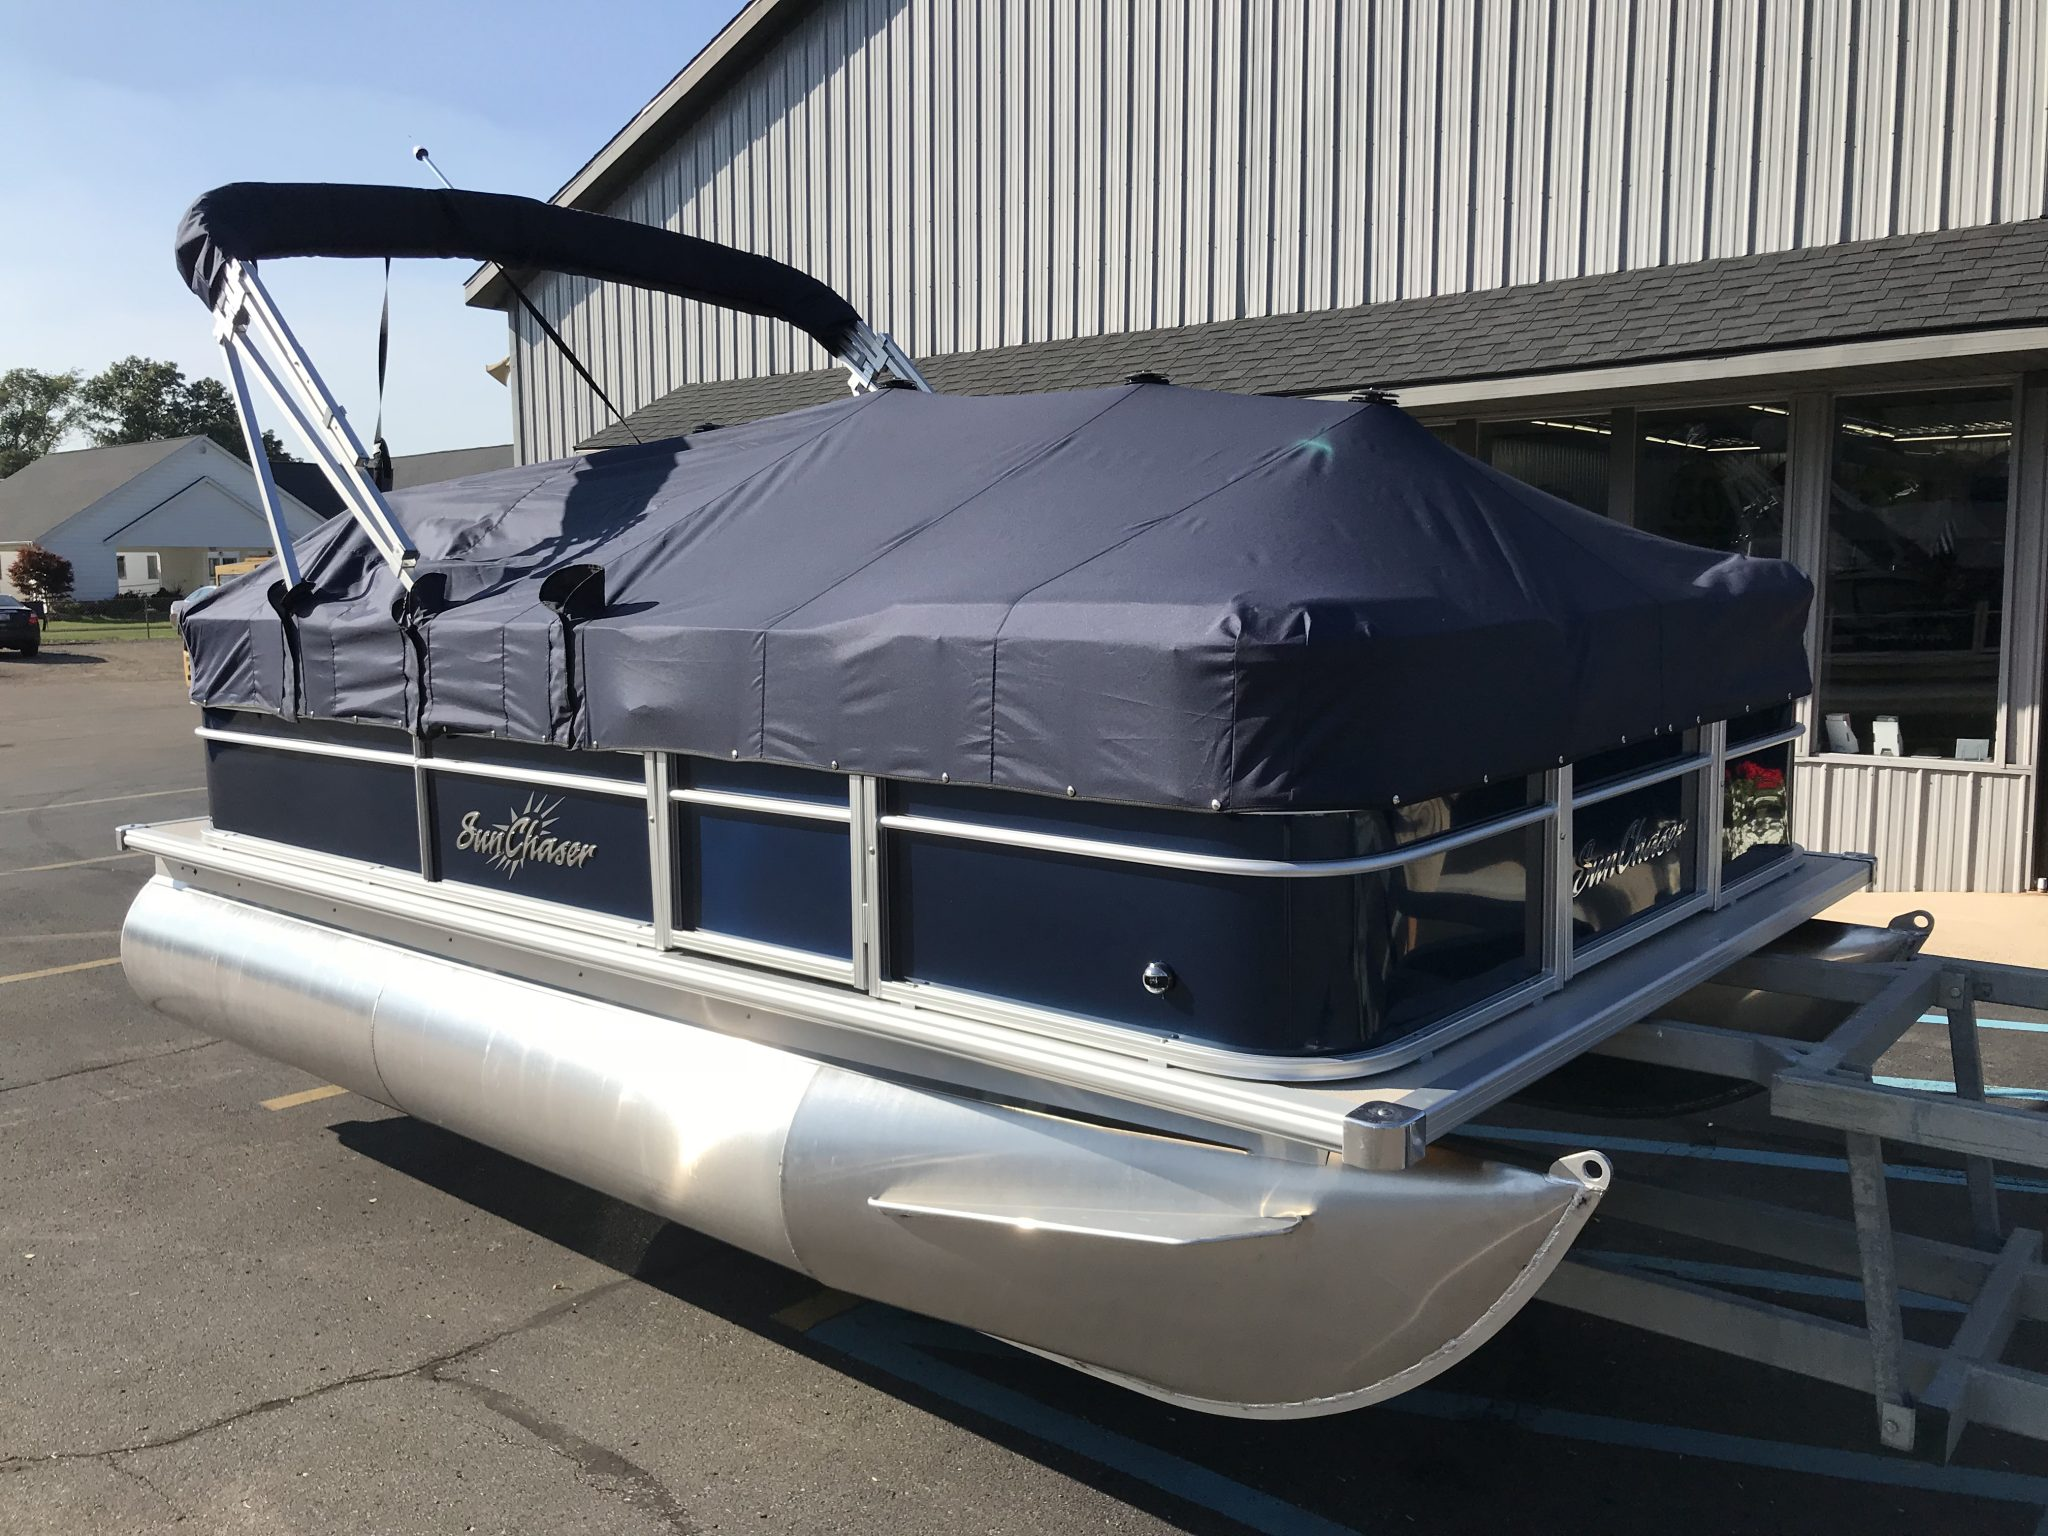 2019 SunChaser 816 Cruise Full Mooring Blue Cover